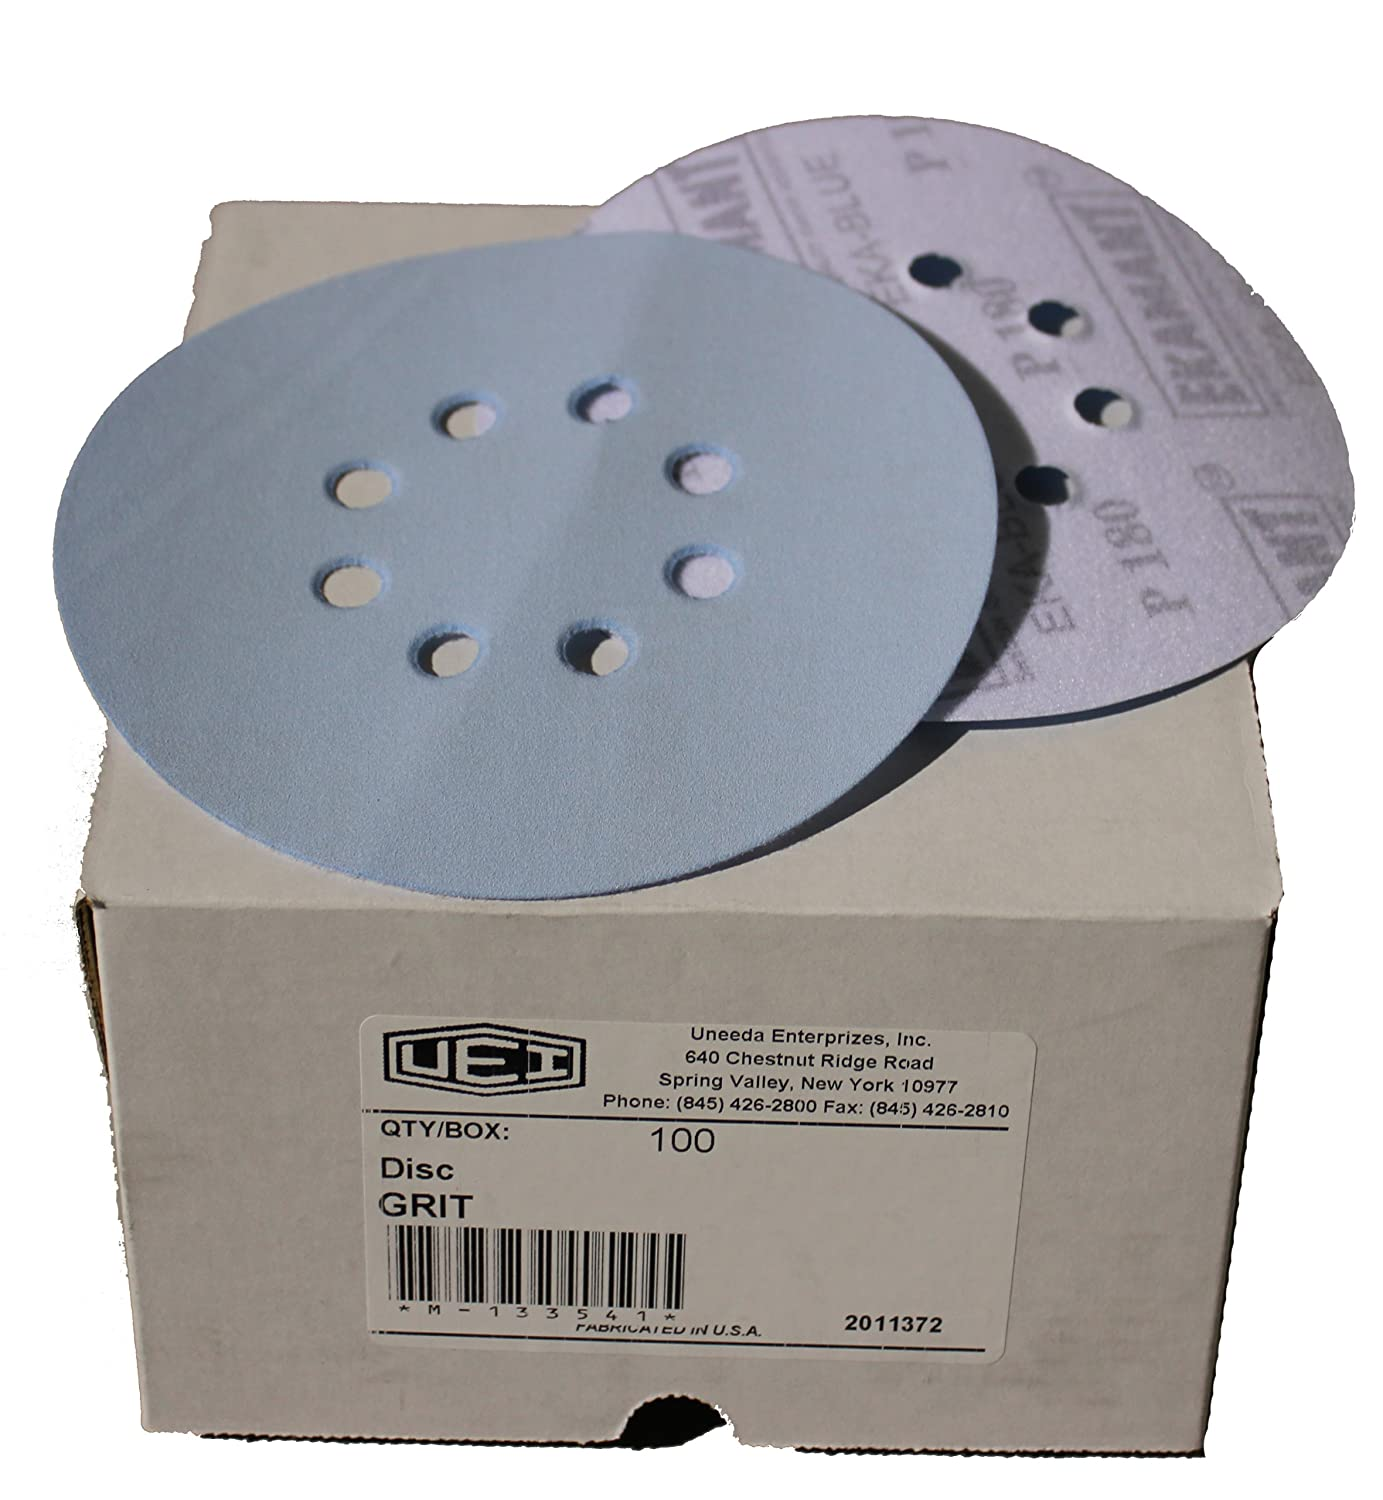 Scotch-Brite Surface Conditioning Disc Hook and Loop Attachment Pack of 100 4 Diameter 3MIA9 SC-DH TM Aluminum Oxide NH A Very Fine